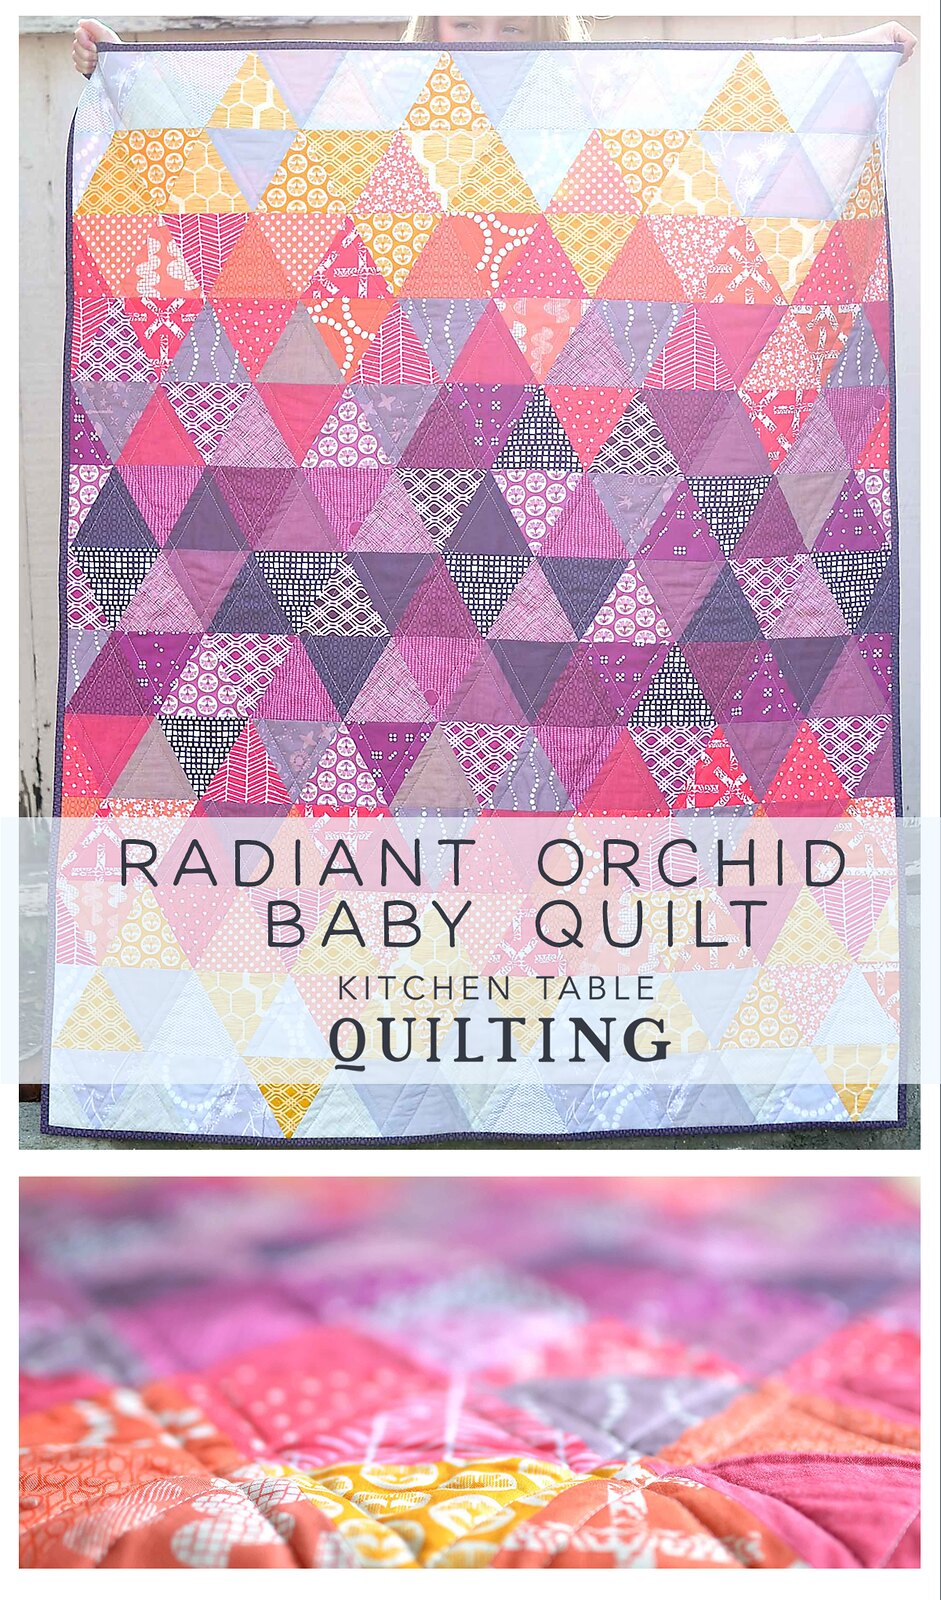 Radiant Orchid Baby Quilt - Kitchen Table Quilting